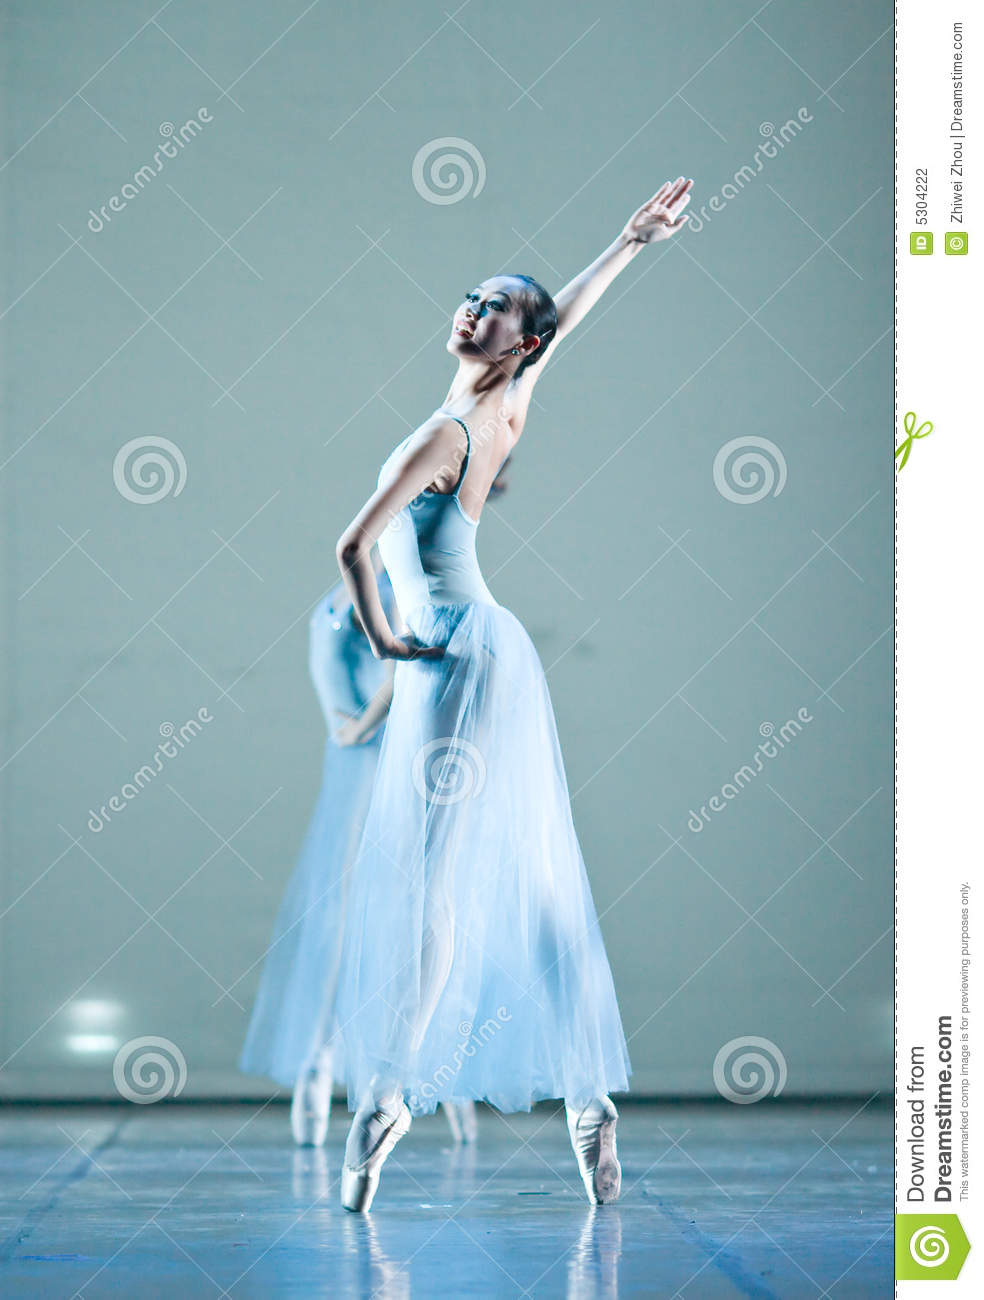 Download Balletto fotografia editoriale. Immagine di balletto, femmina - 5304222